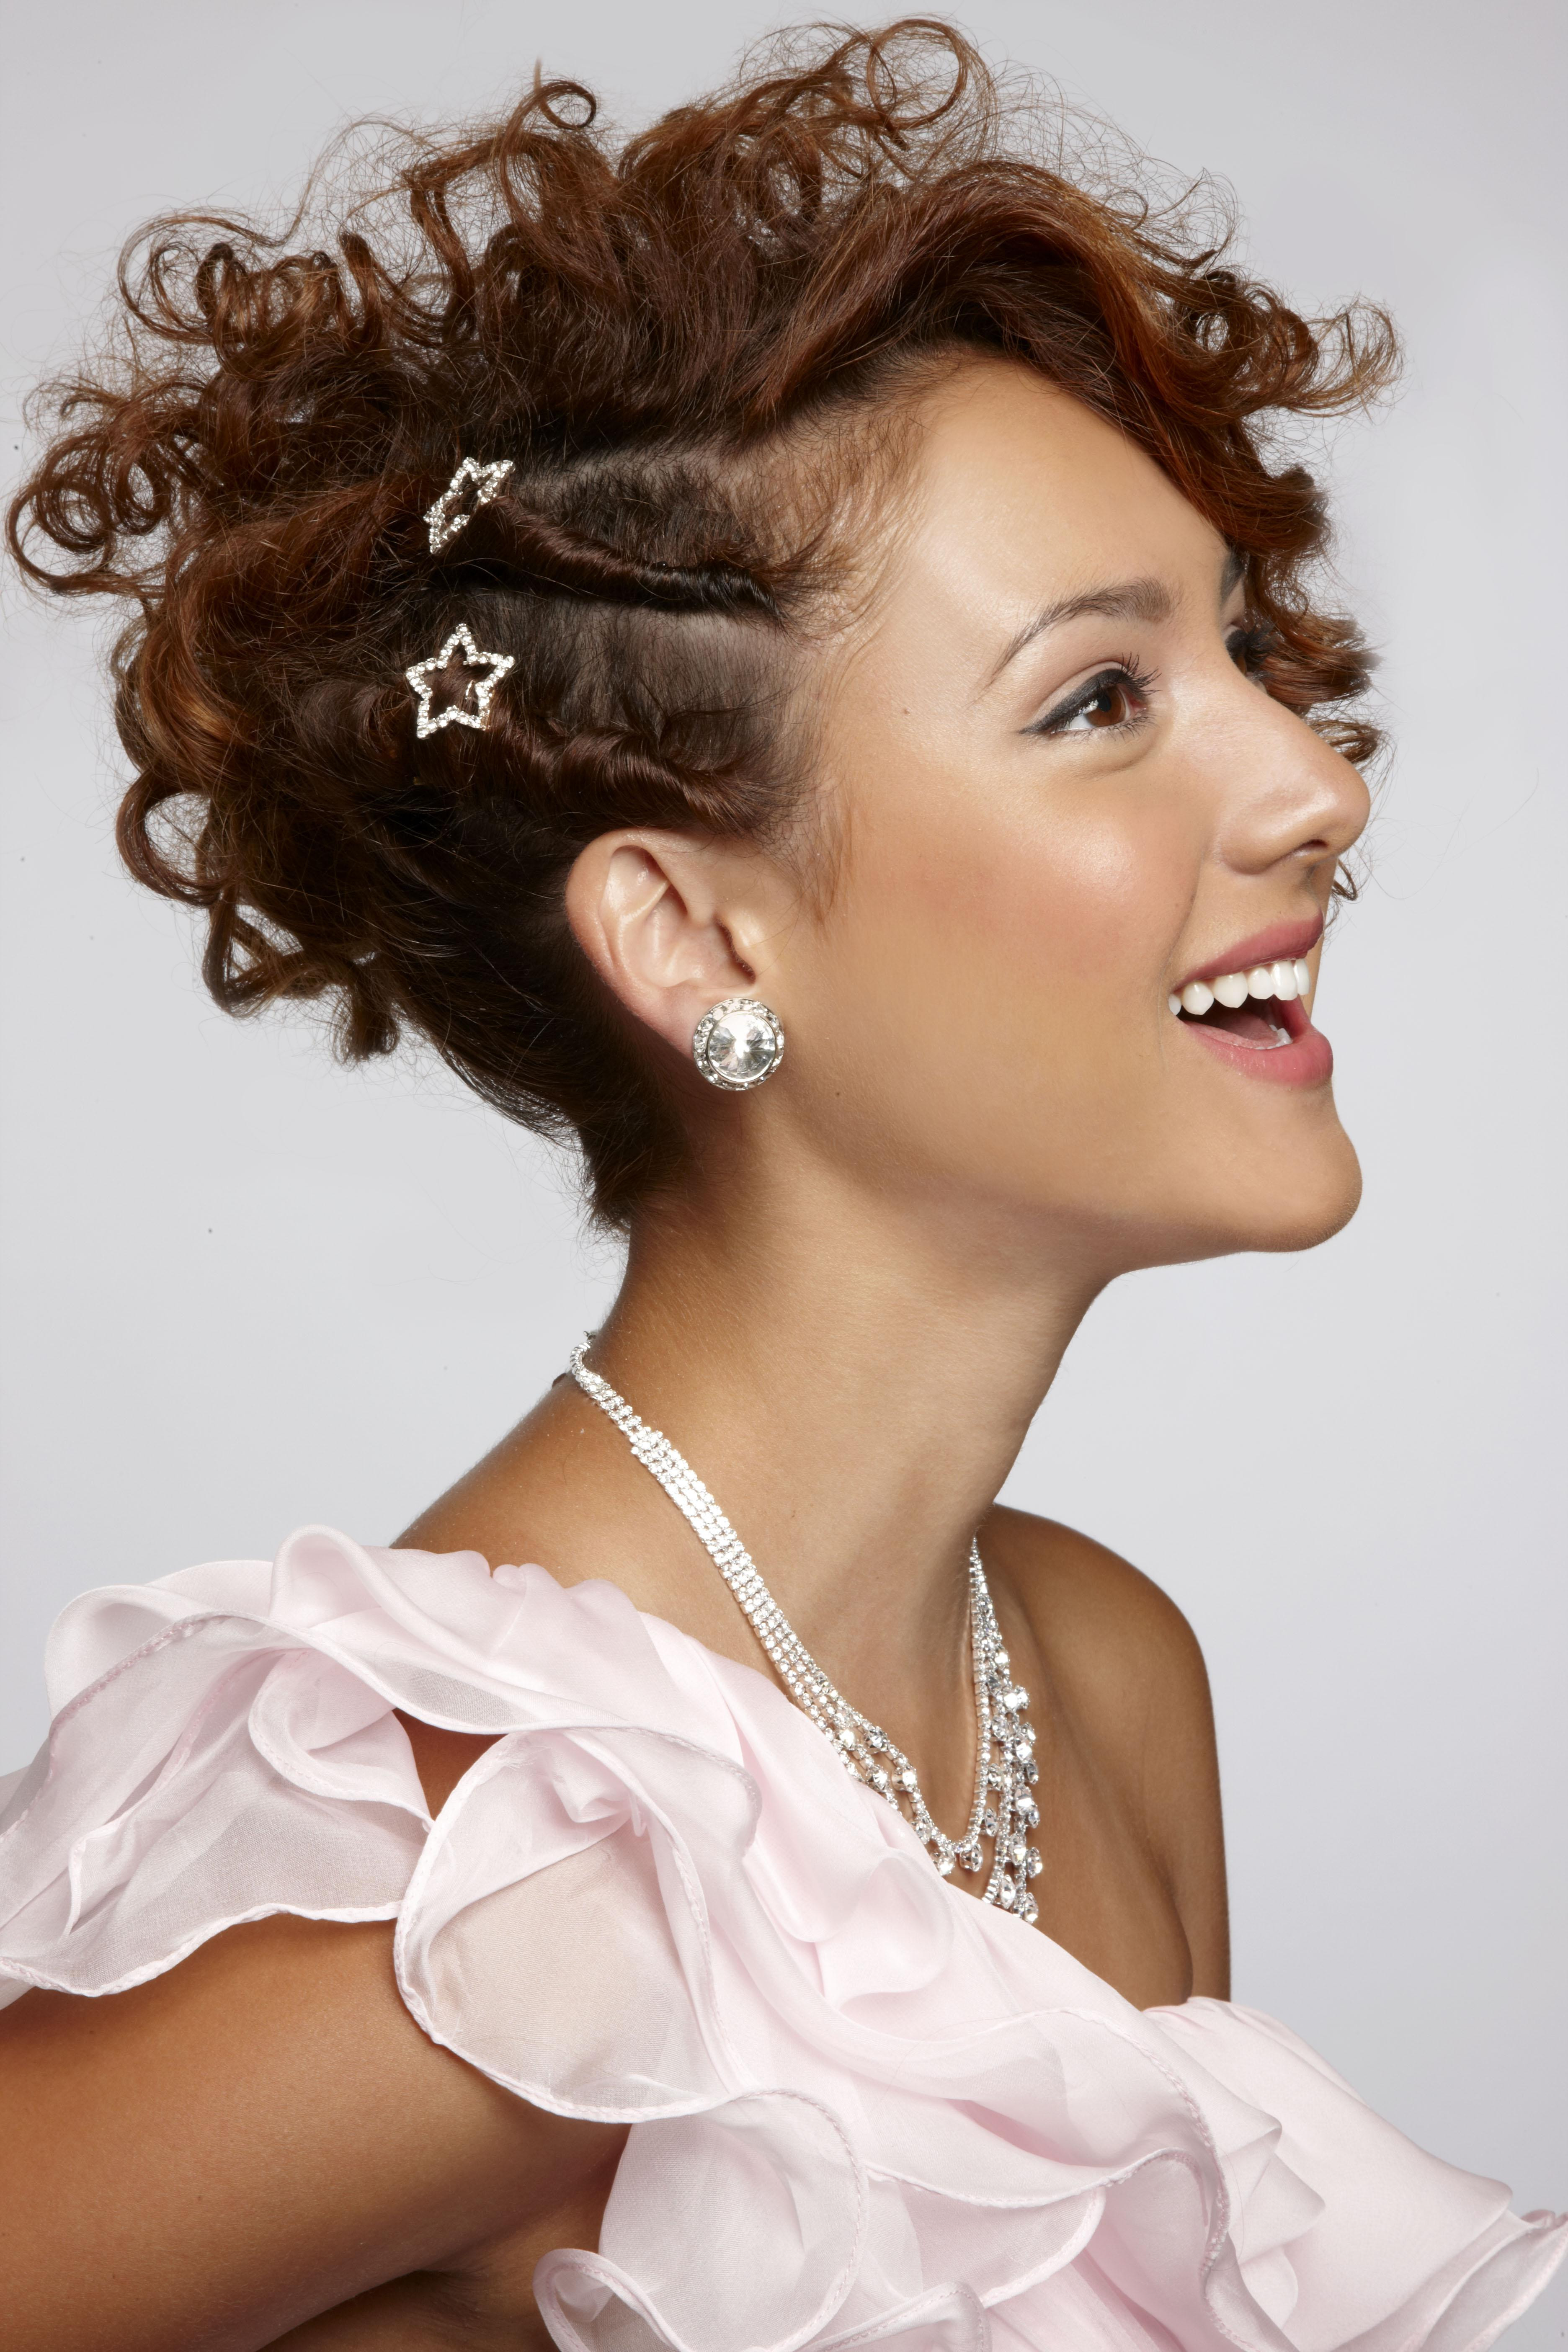 Best ideas about Prom Haircuts . Save or Pin 33 Prom Hairstyles For 2016 Prom Hair Ideas for Short Now.